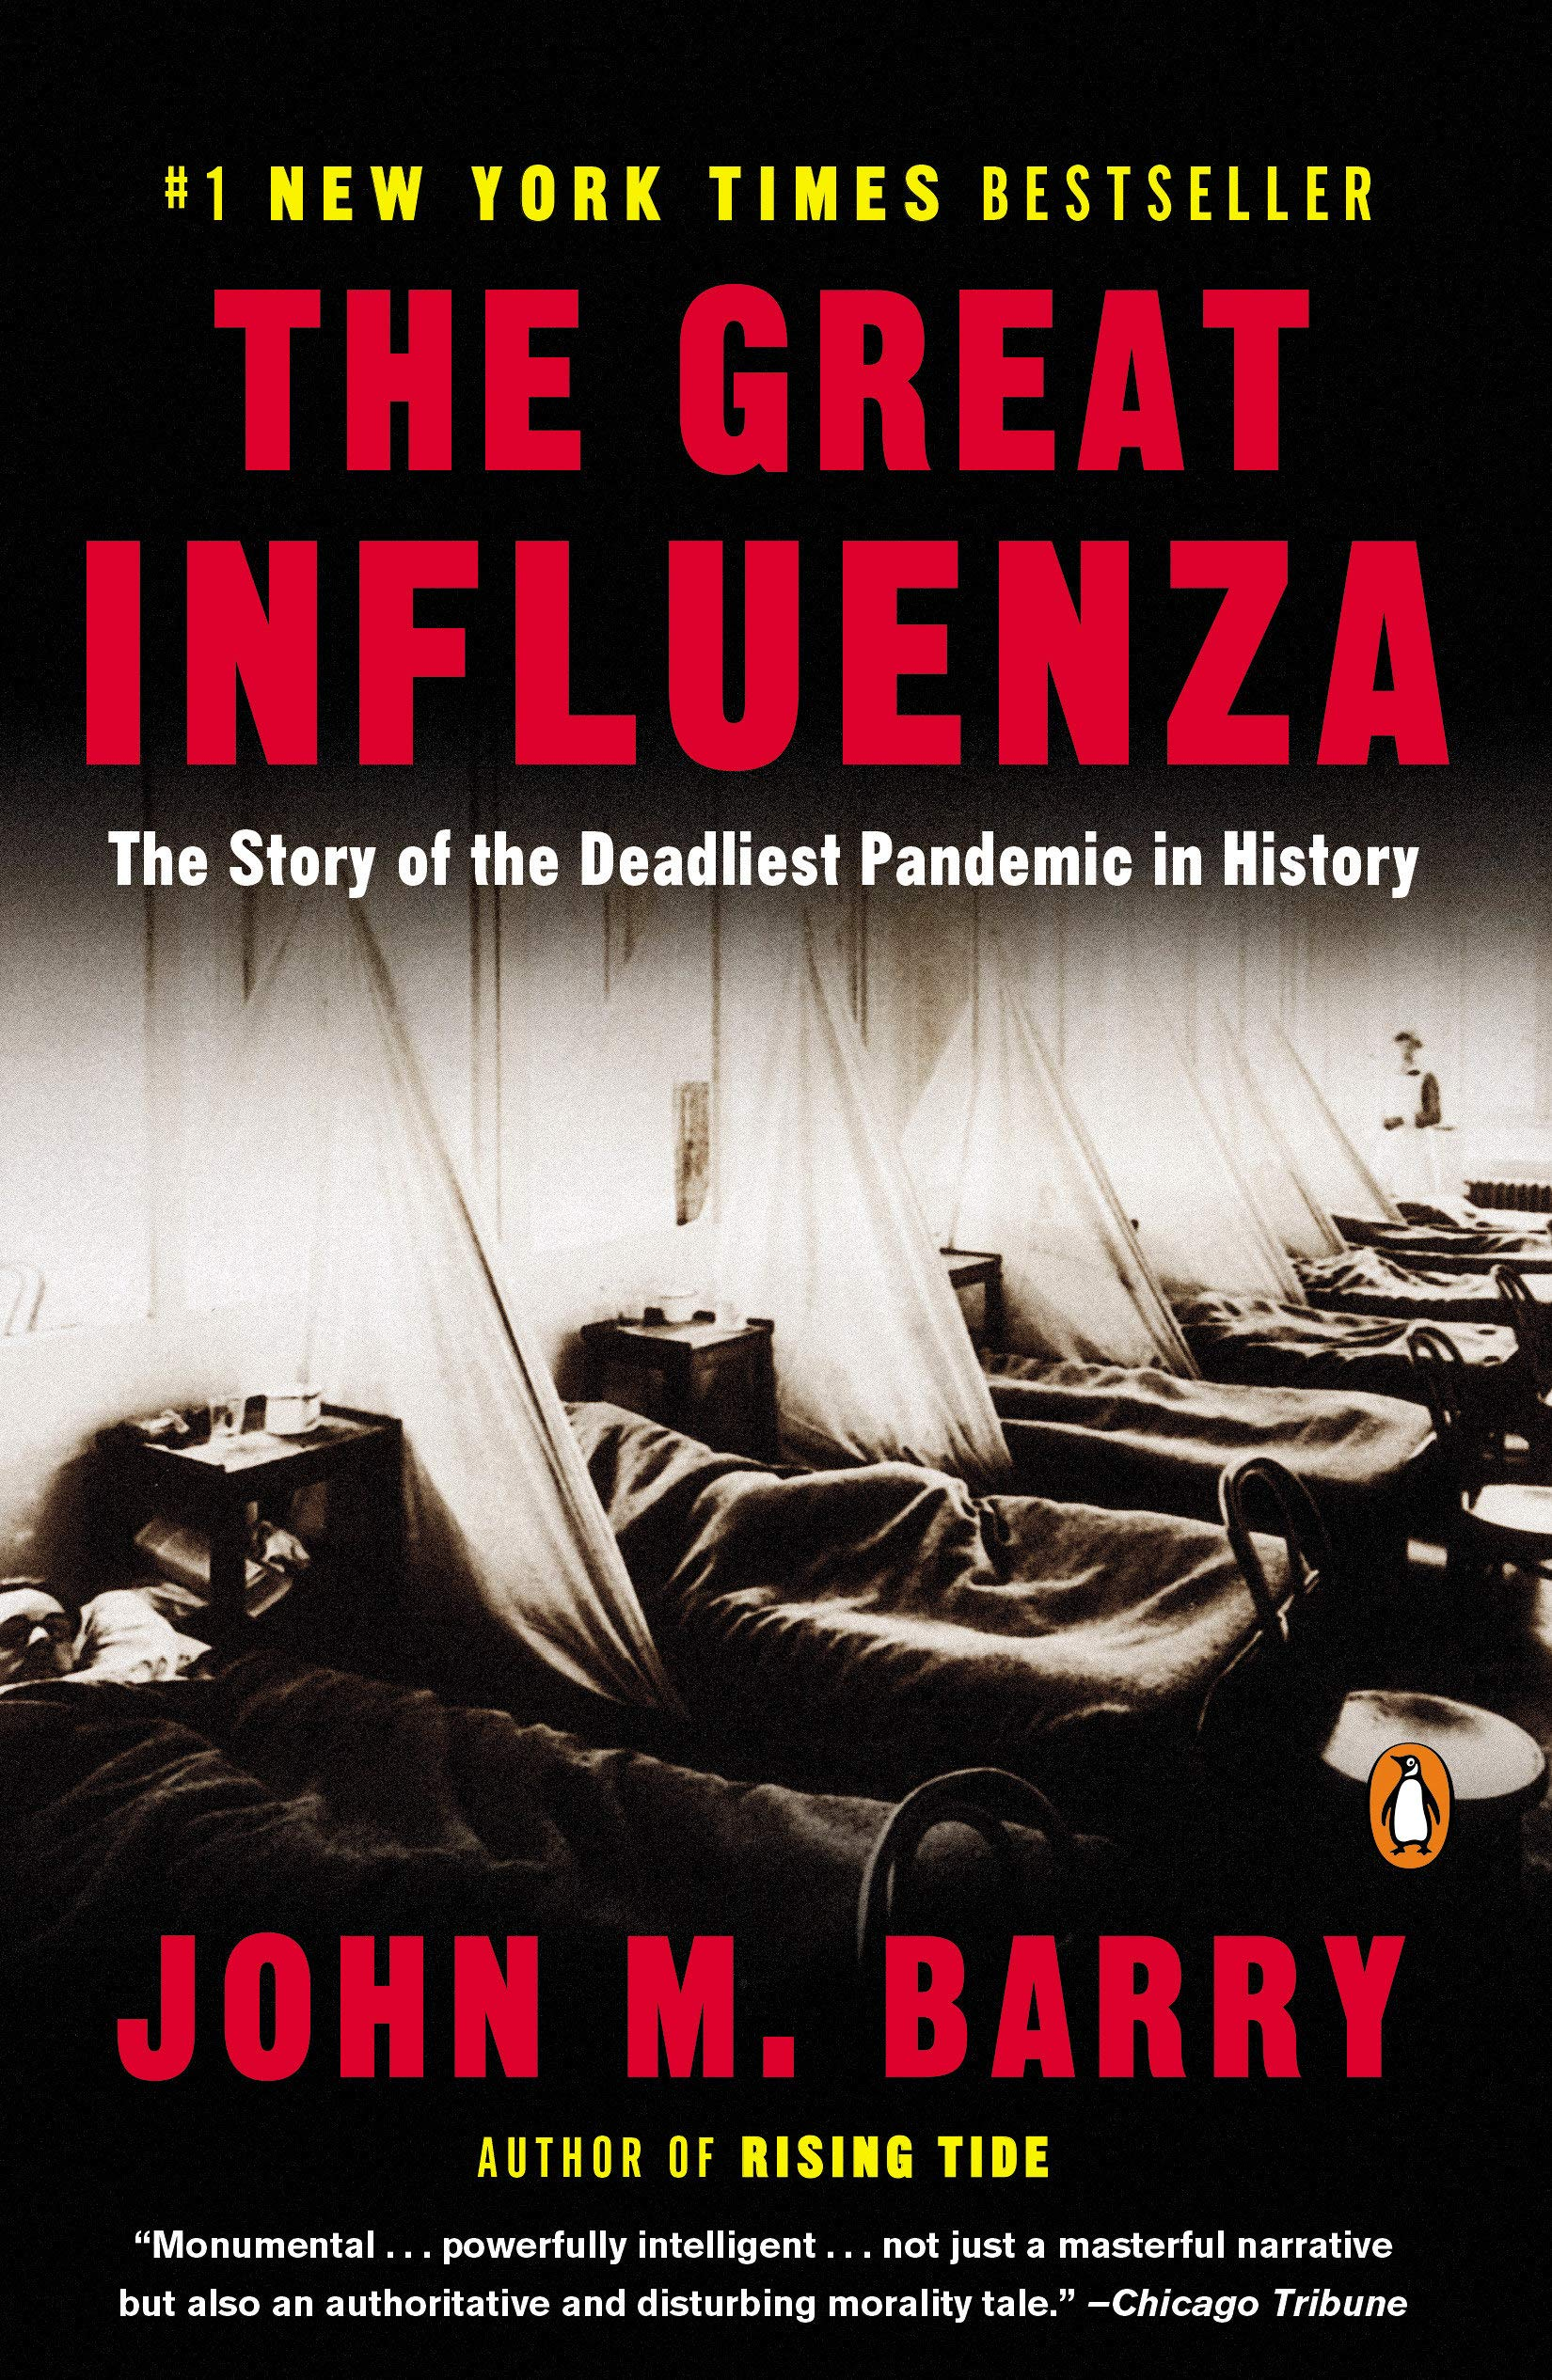 The Great Influenza: The Story of the Deadliest Pandemic in History: Amazon.it: Barry, John M: Libri in altre lingue